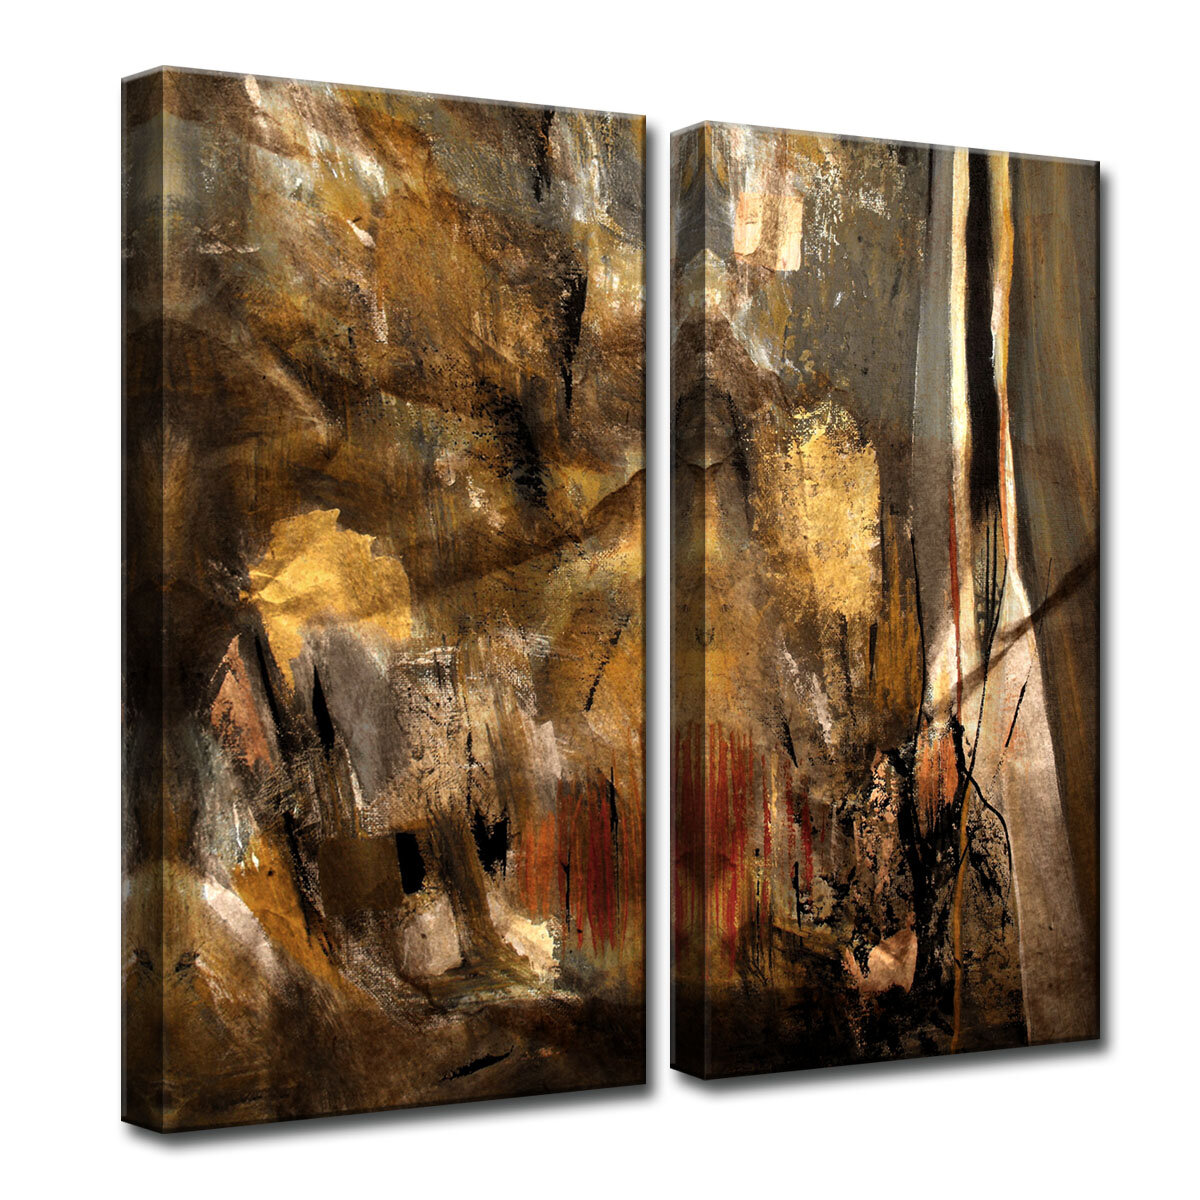 Earth Tone Abstract I 2 Piece Painting Print On Canvas Set